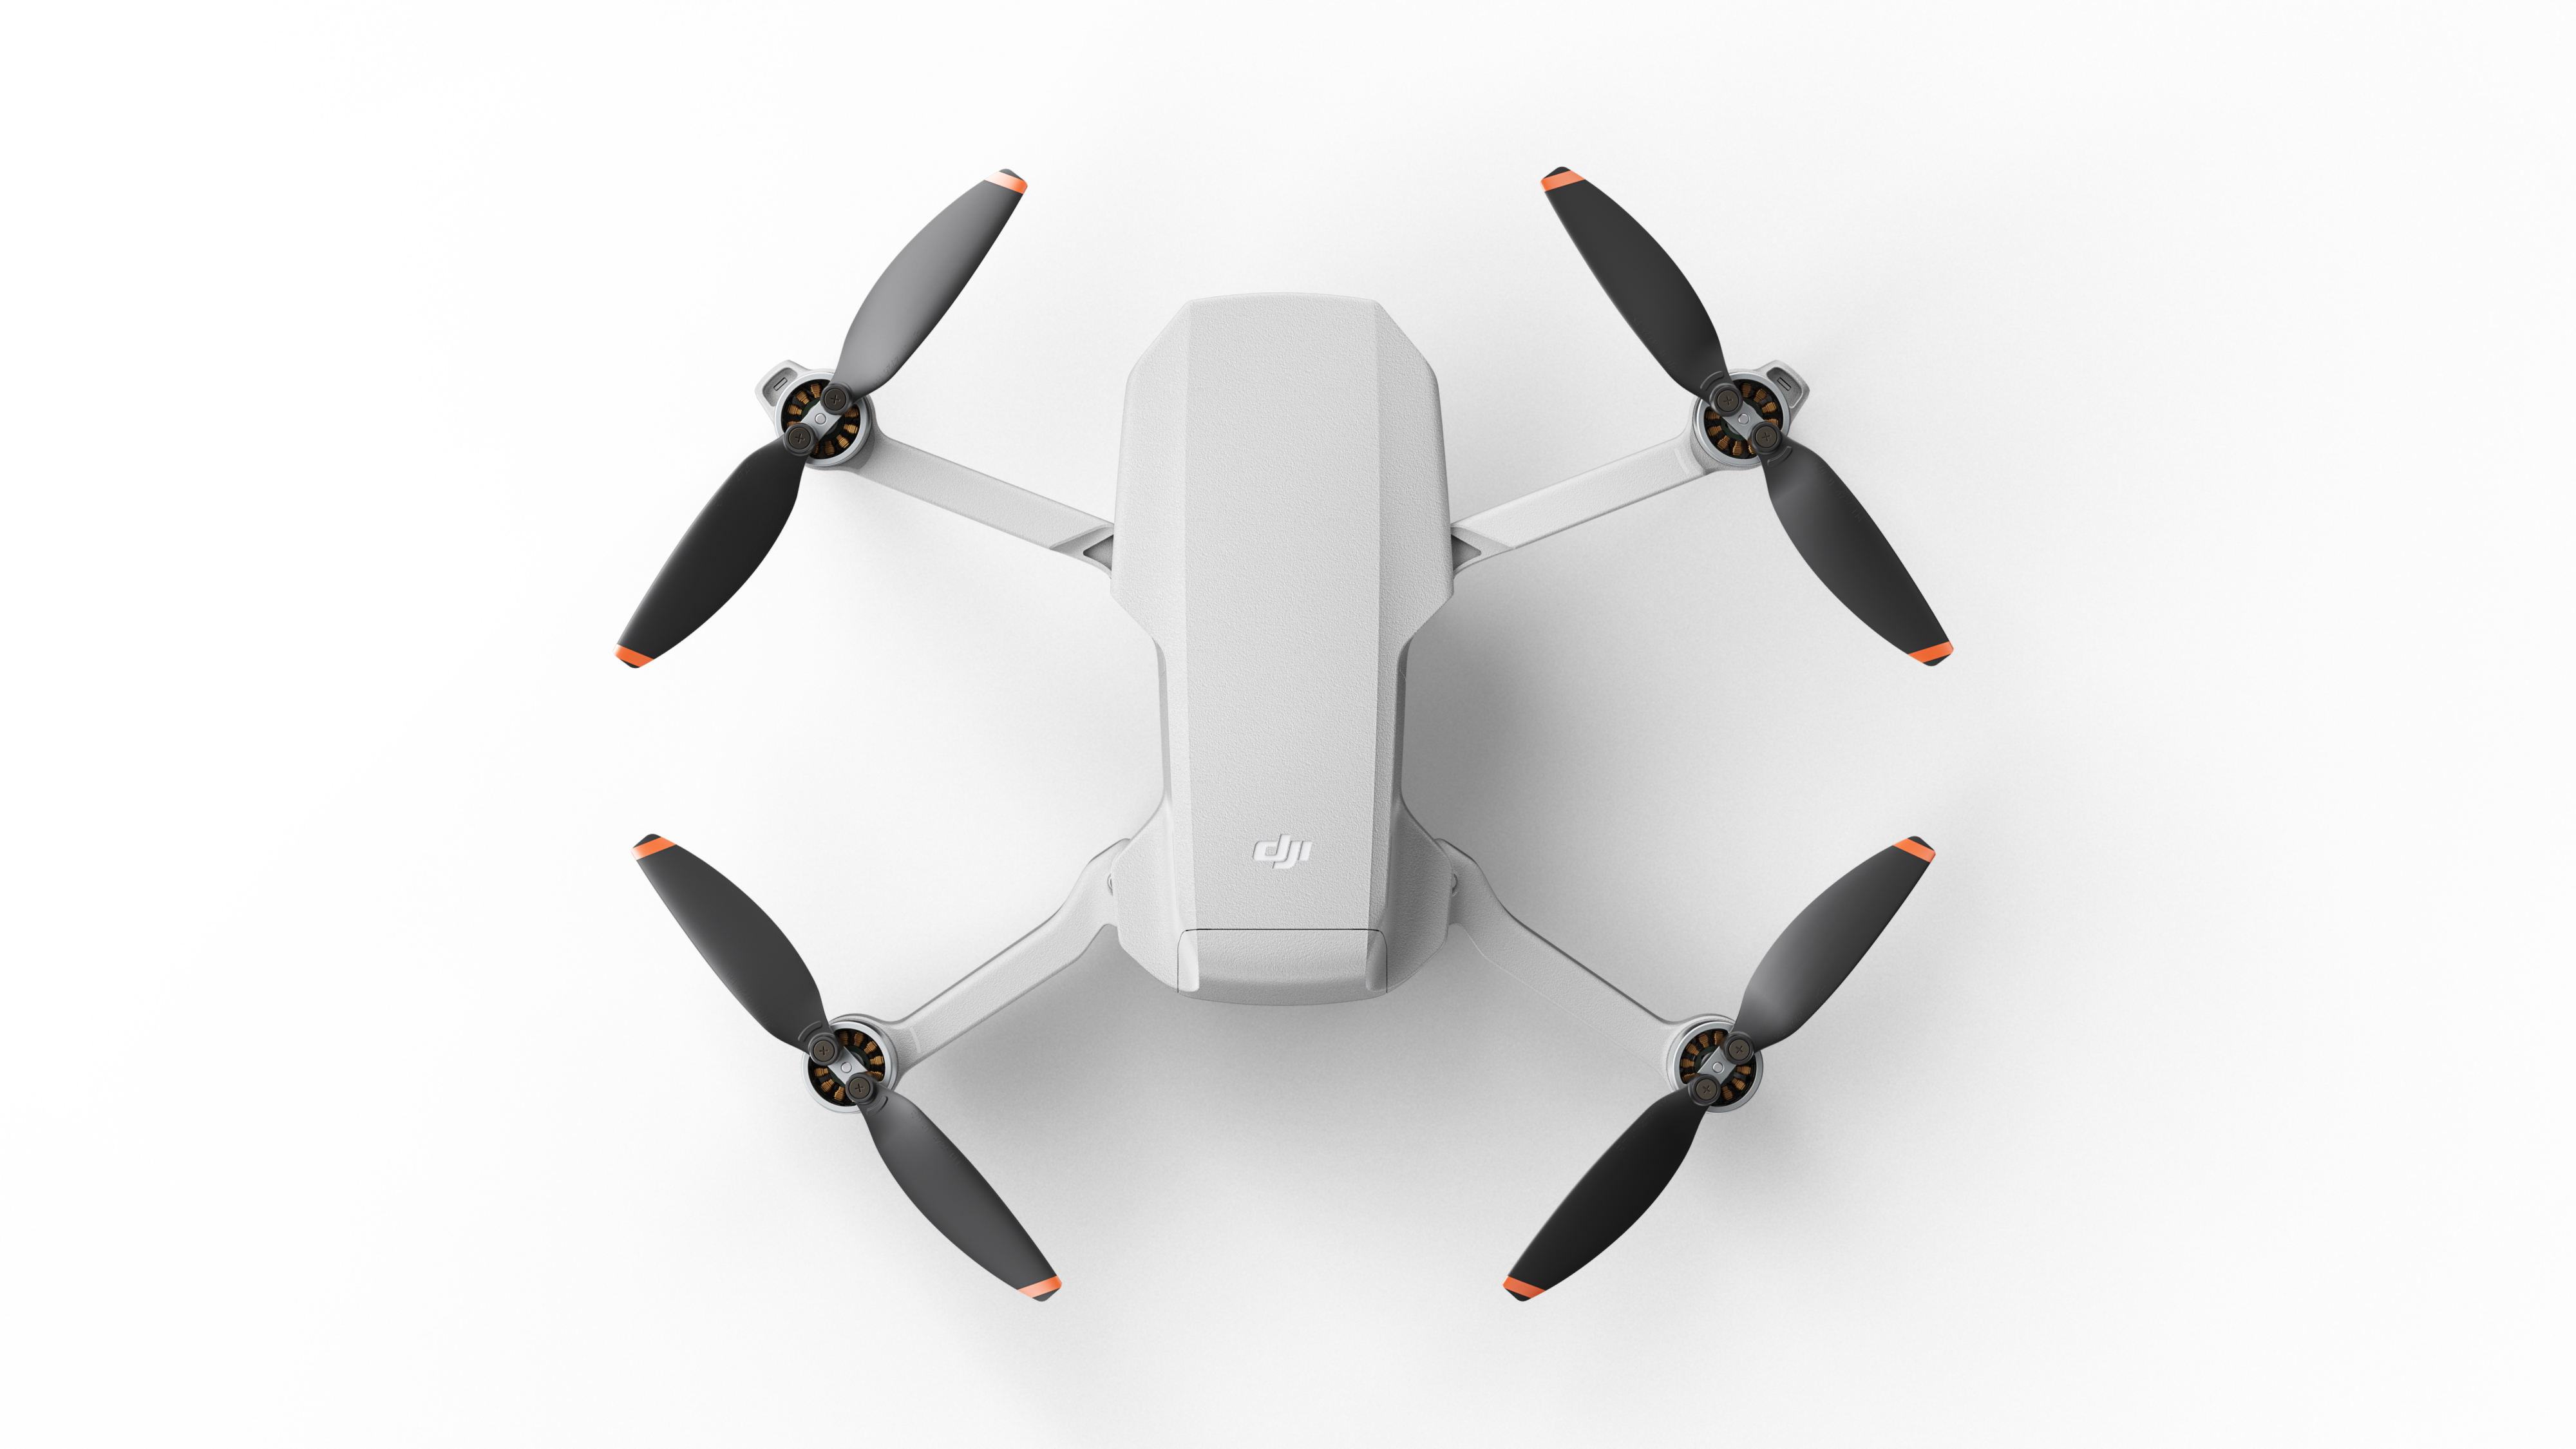 drone with arms extended